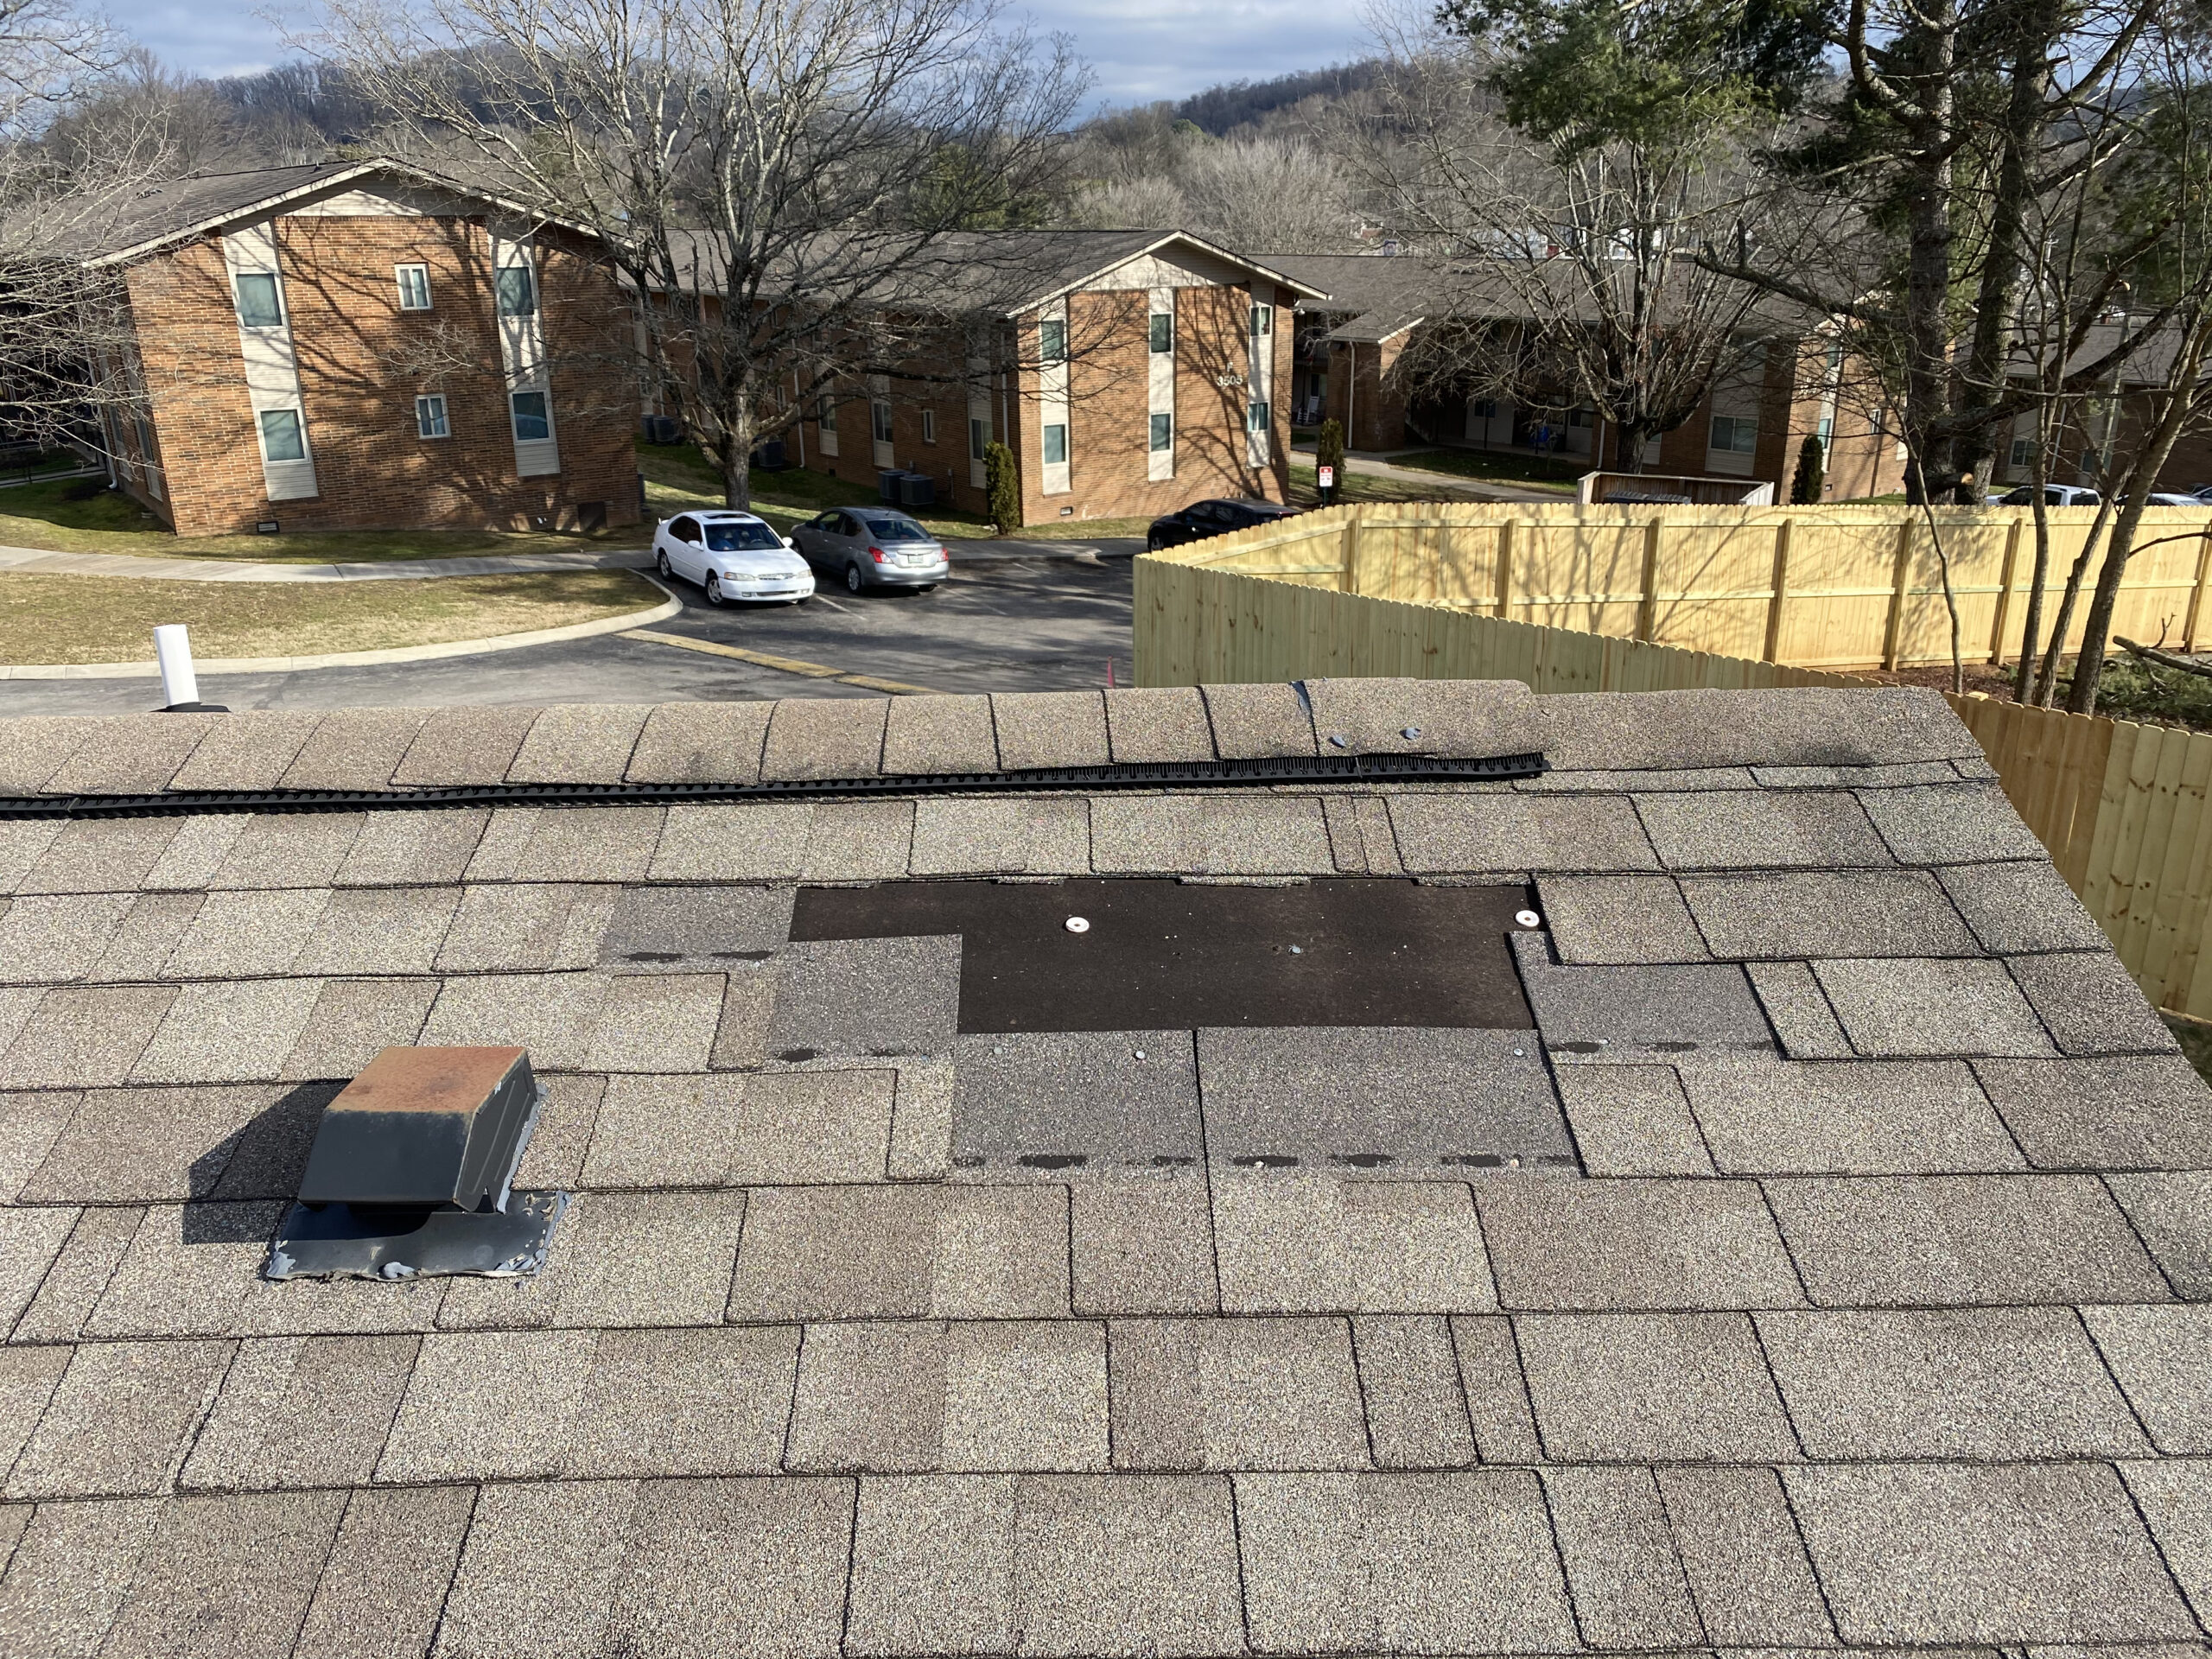 This is a picture of a brown roof that is missing about four shingles at the ridge.